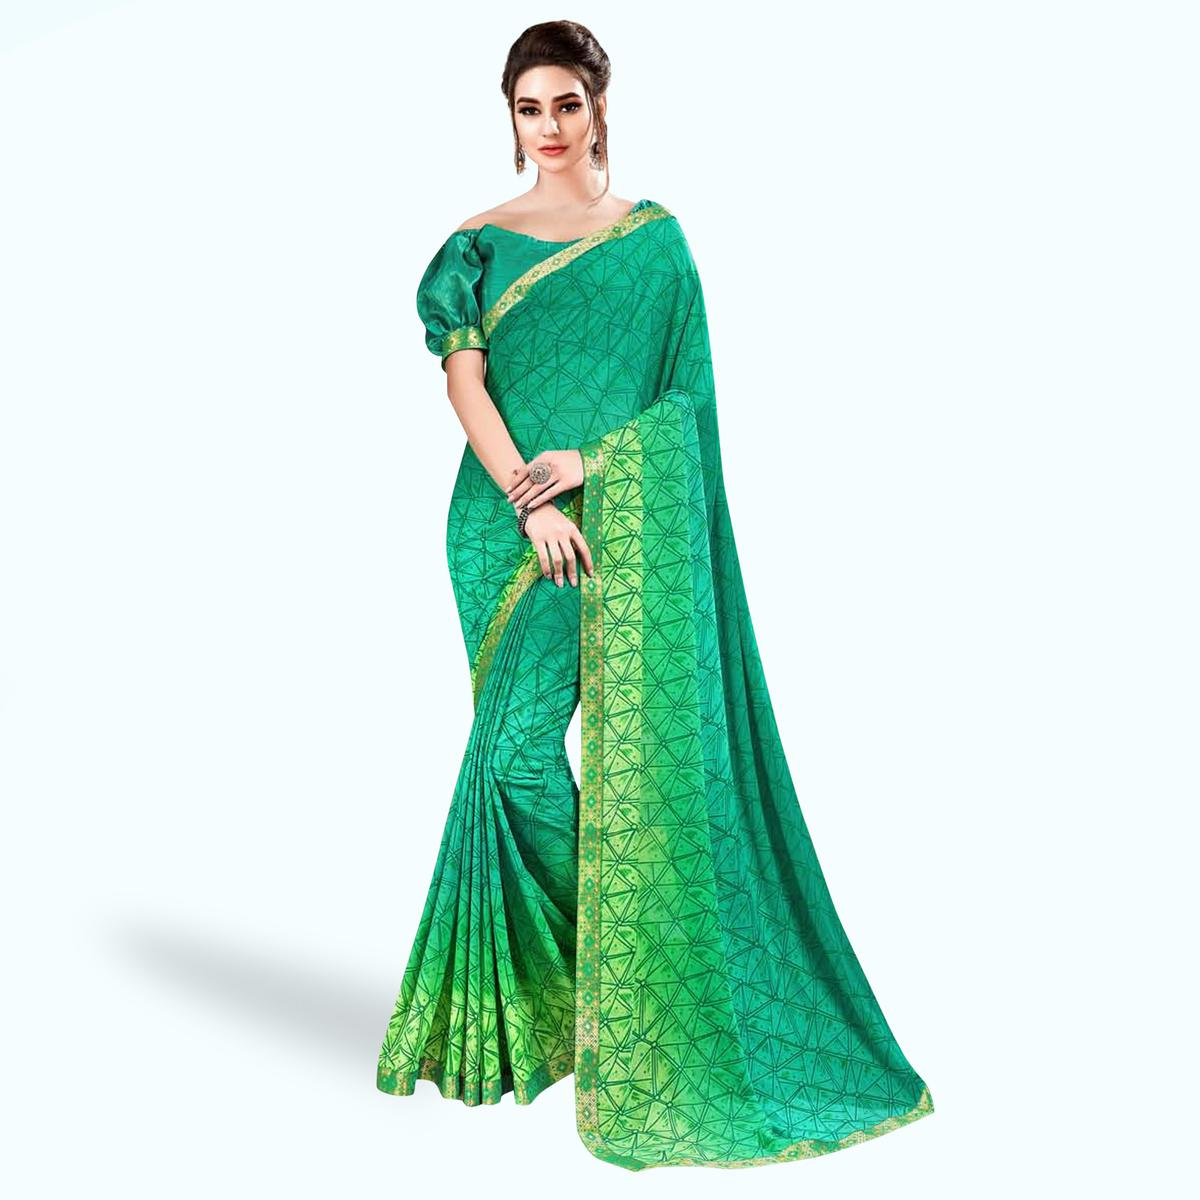 Exceptional Green Colored Casual Wear Printed Georgette Saree With Jacquard Lace Border